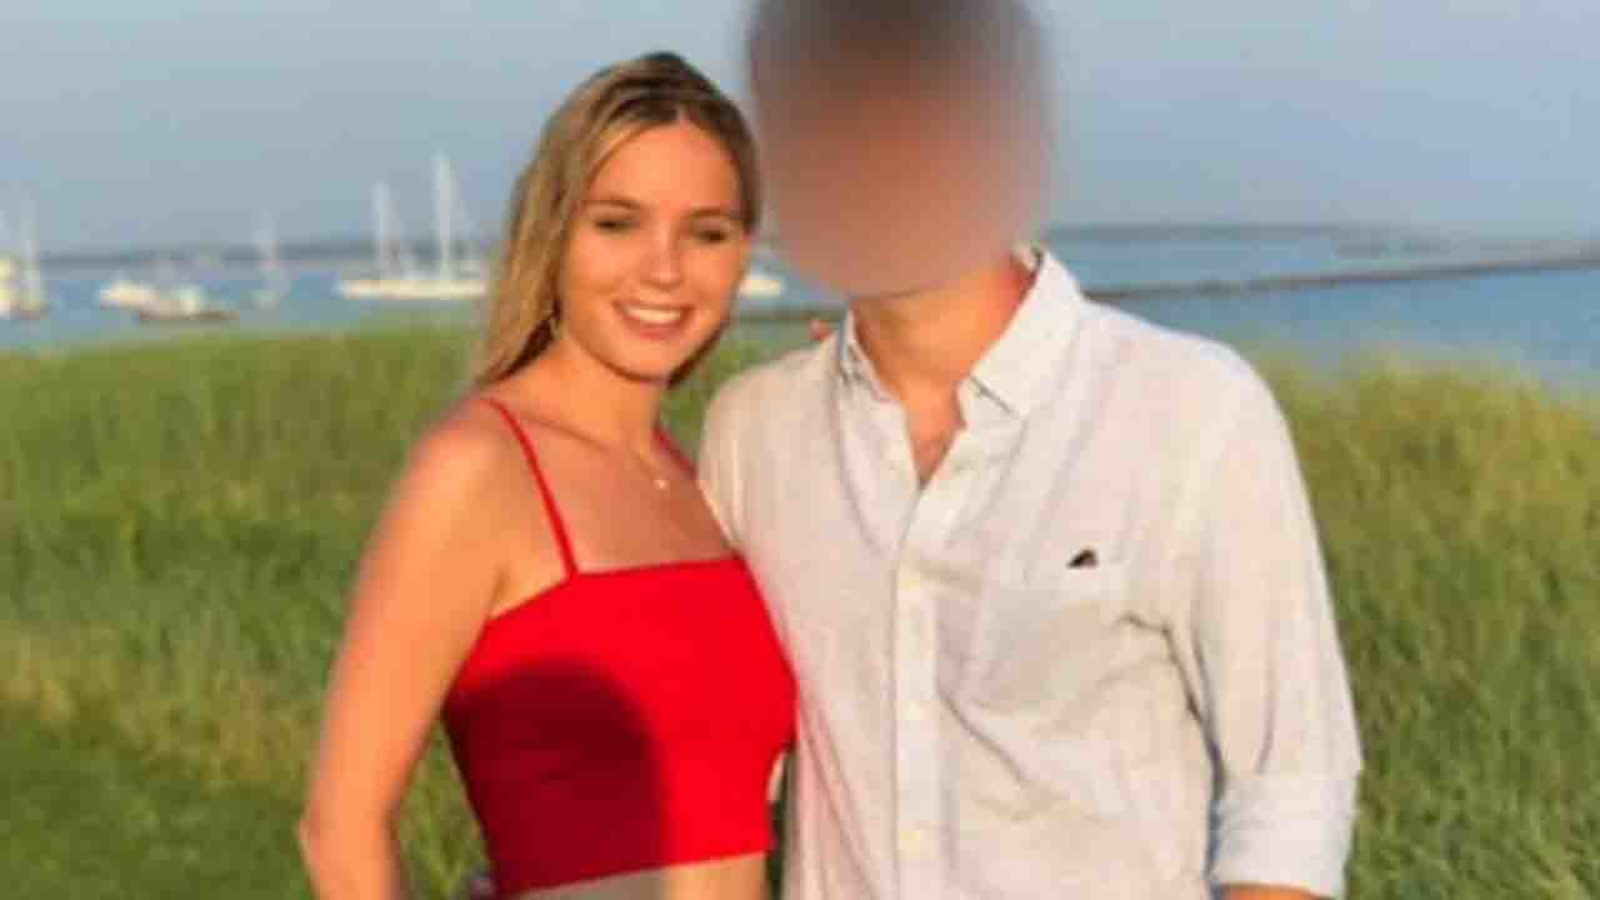 Saoirse Kennedy Hill, 22-year-old granddaughter of Robert F. Kennedy, found dead at Kennedy compound